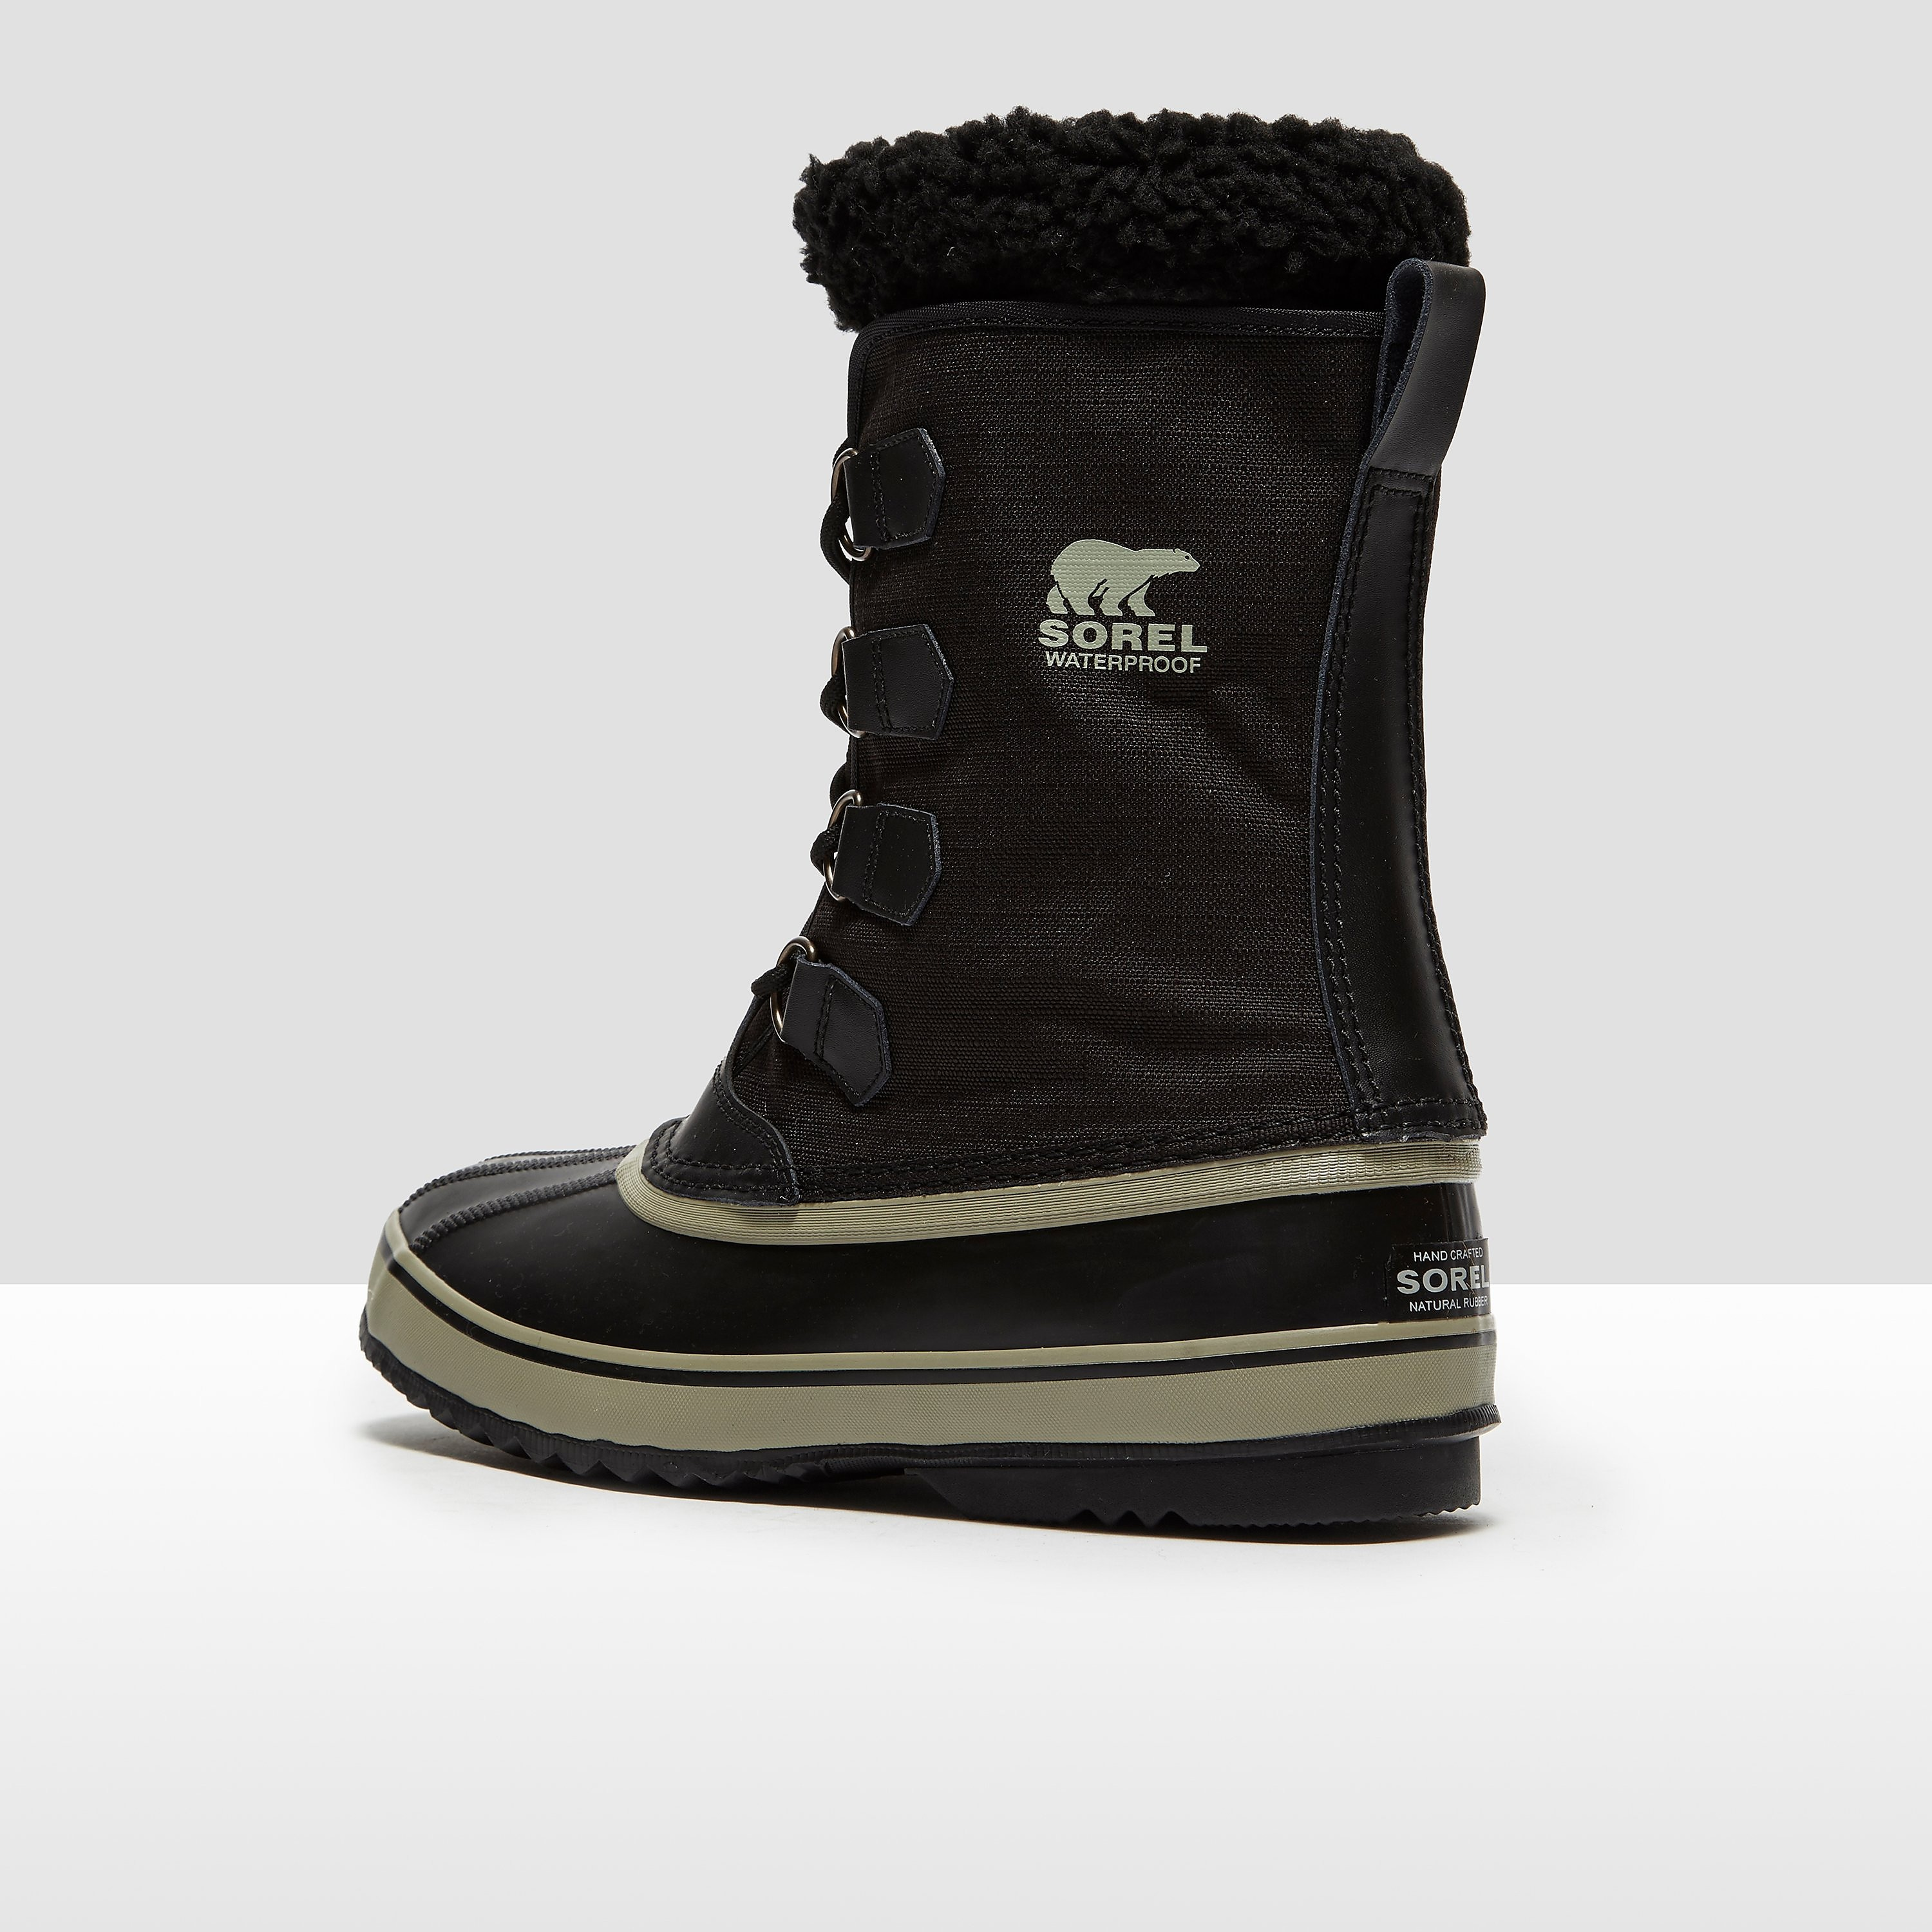 Sorel 1964 Pac 2 Men's Boots